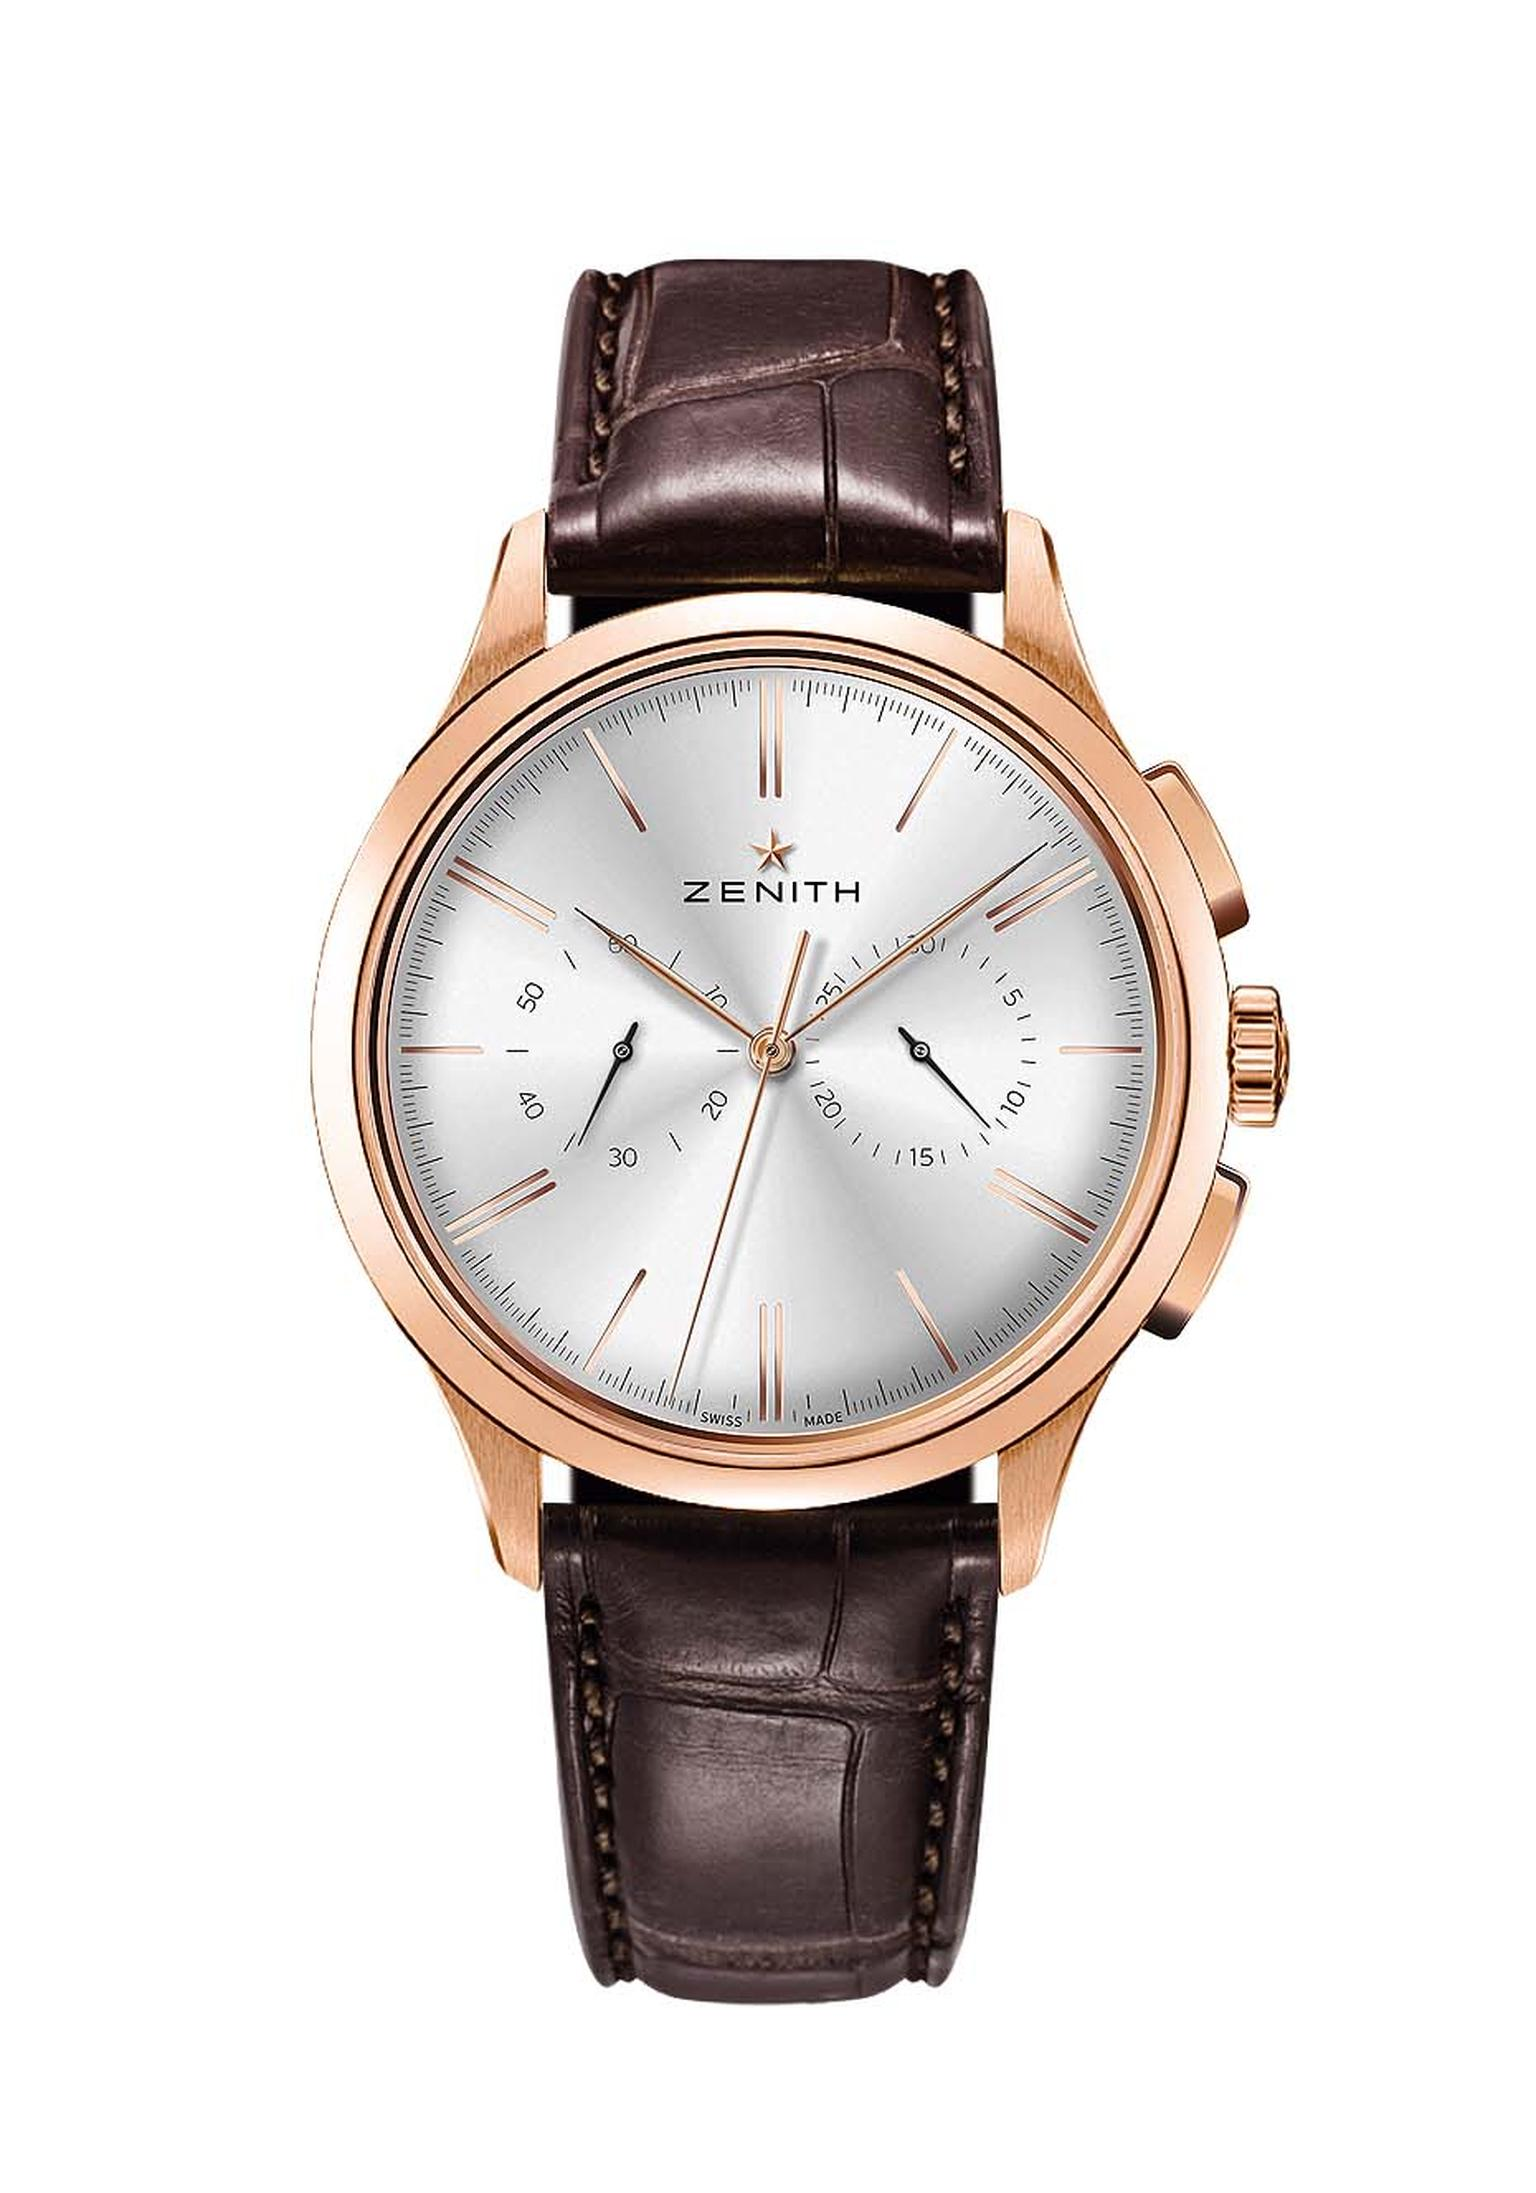 Zenith El Primero Chronograph Classic is one of the most handsome chronograph watches on the market today. With its lean 42mm rose gold case and cambered dial with bi-compax display, this watch is a classic for tomorrow.